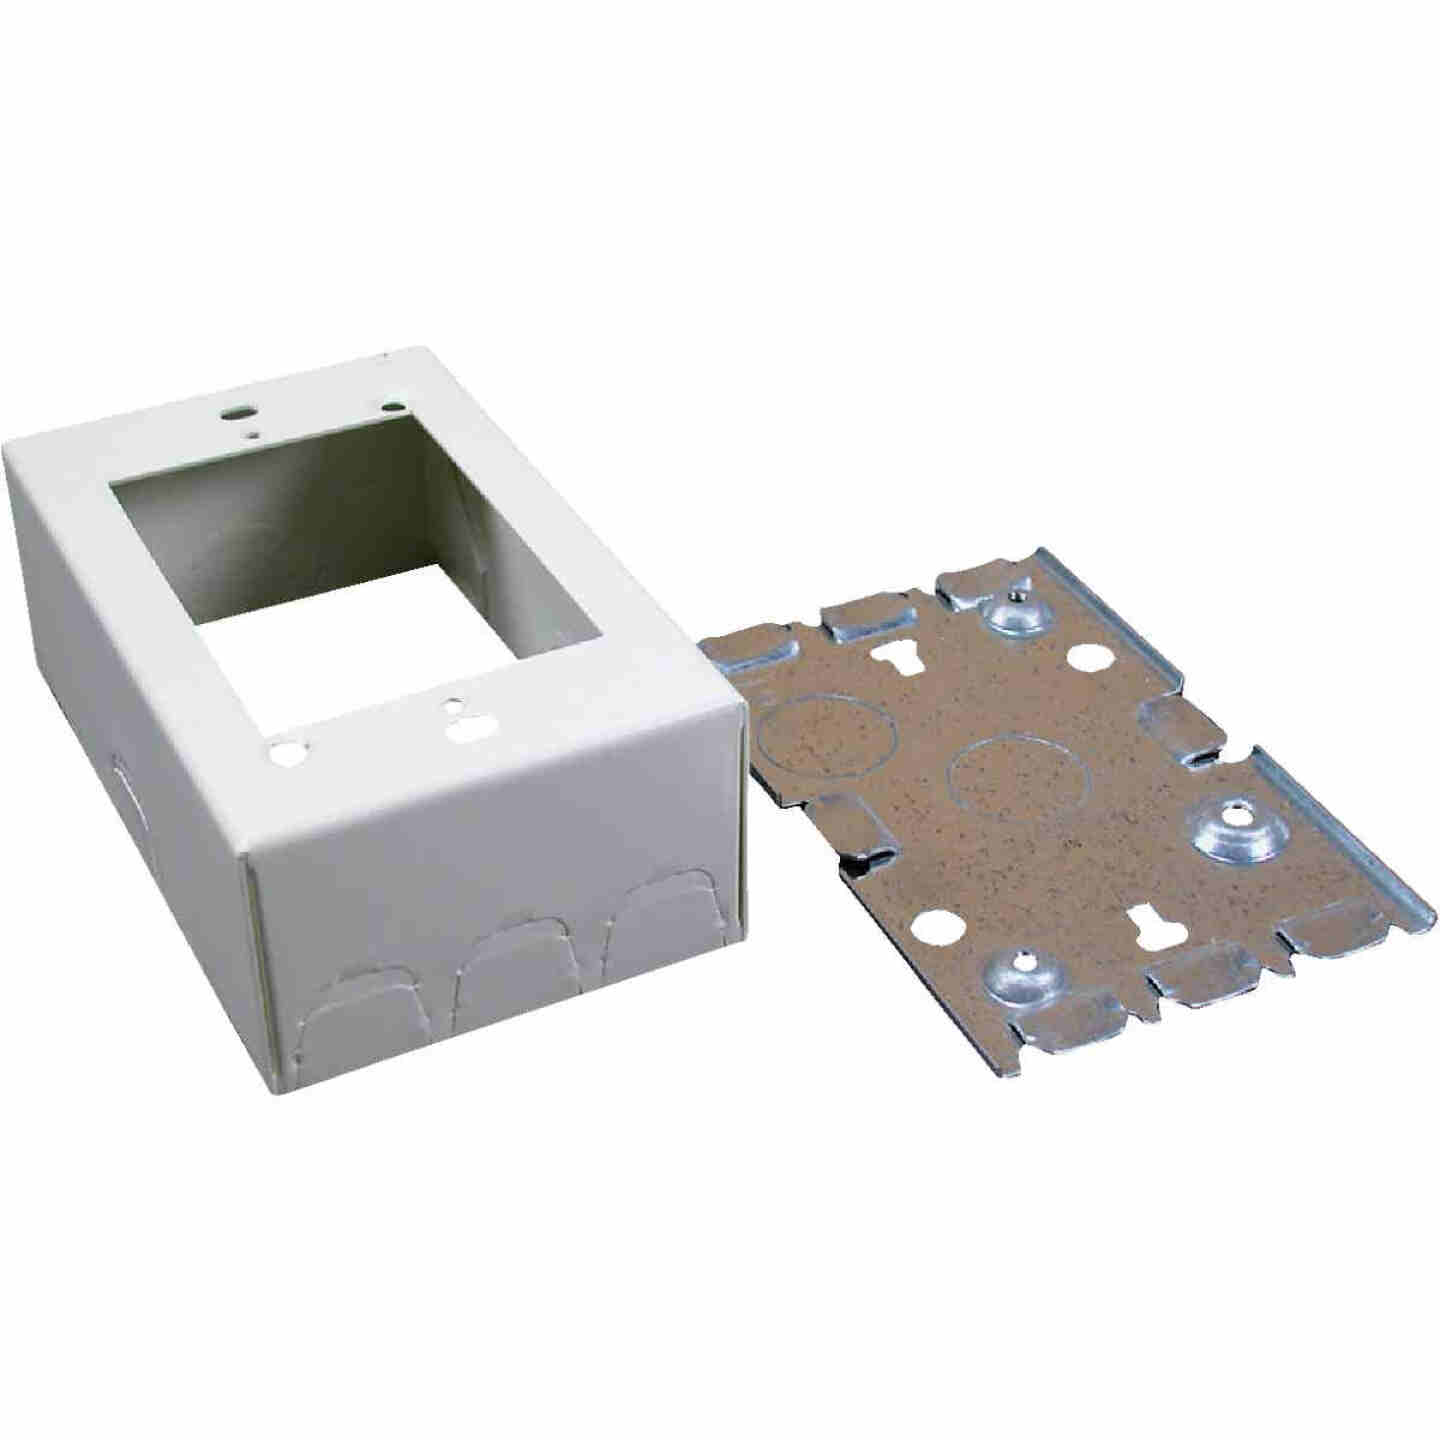 Wiremold Ivory Steel 1-3/4 In. Outlet Box Image 1